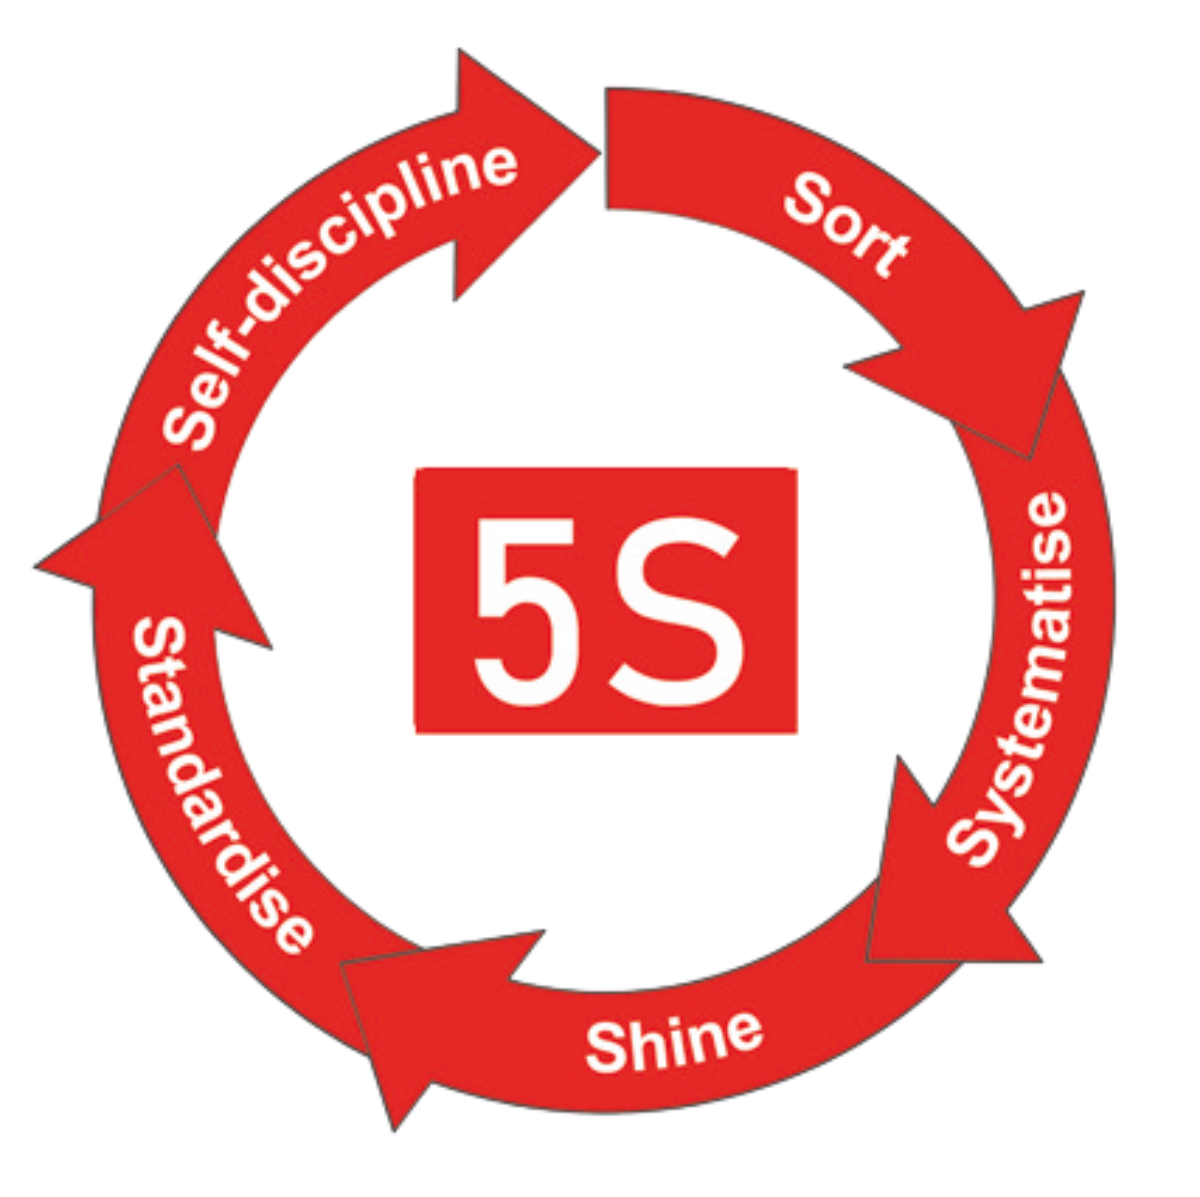 5S: Sort, Systematise, Shine, Standardise, Self-discipline